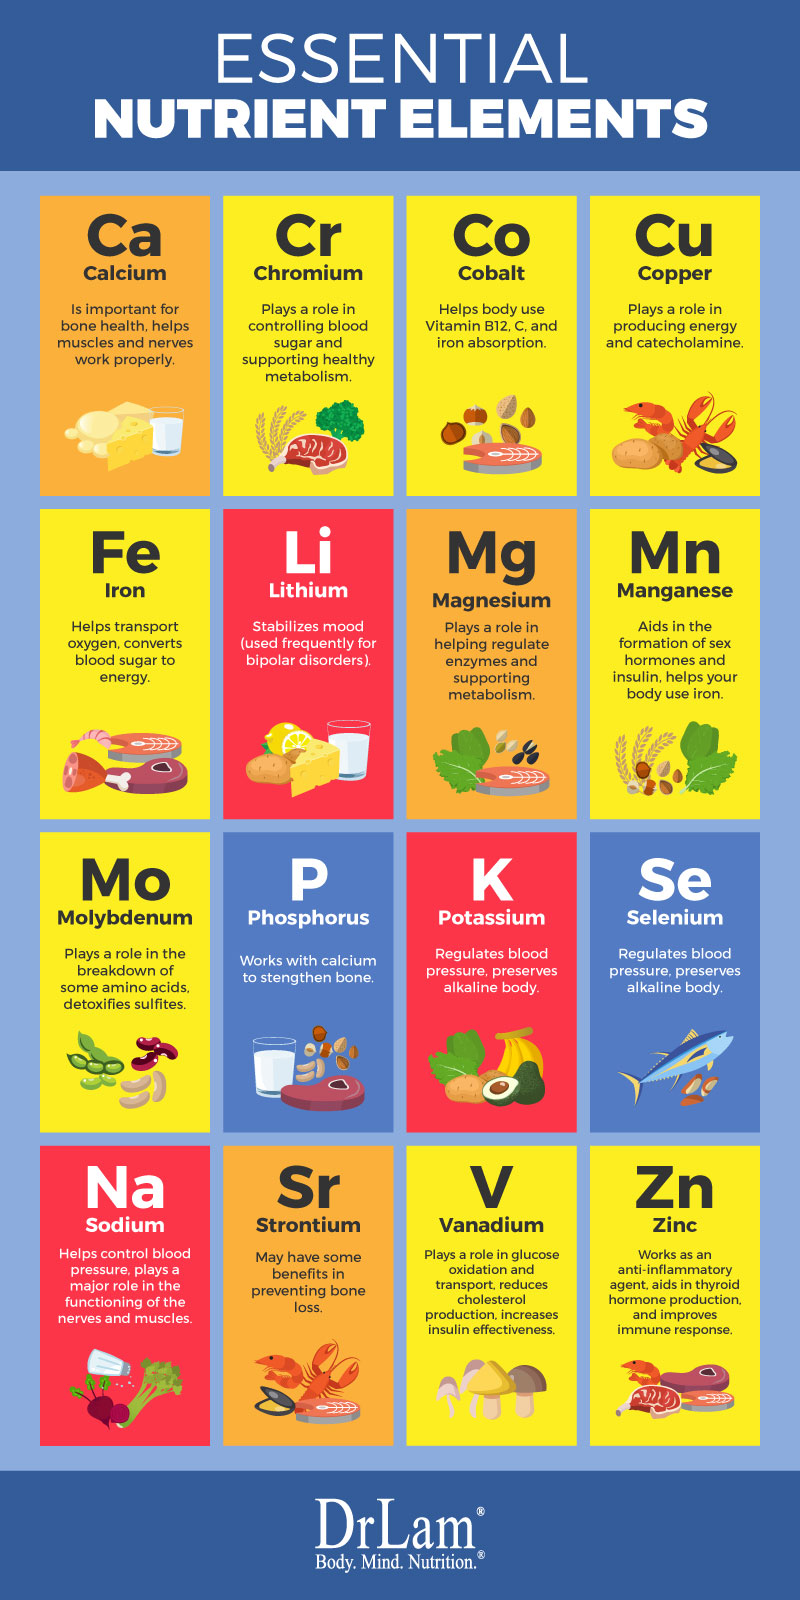 Check out this easy to understand infographic about the essential nutrient elements